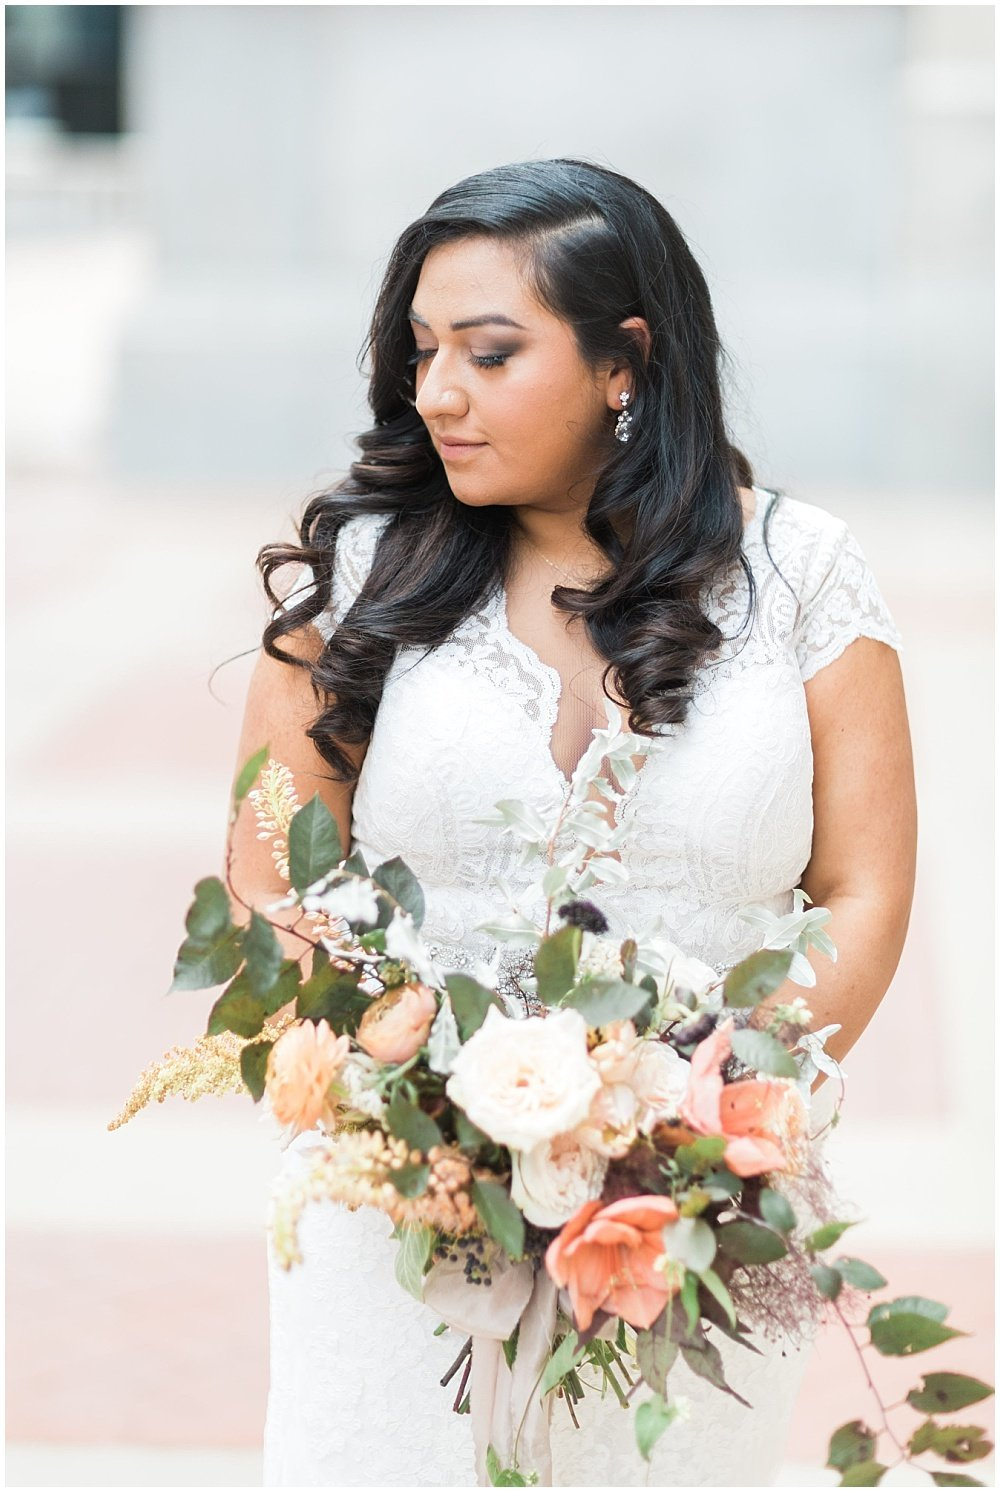 Summer-Mexican-Inspired-Gold-And-Floral-Crowne-Plaza-Indianapolis-Downtown-Union-Station-Wedding-Cory-Jackie-Wedding-Photographers-Jessica-Dum-Wedding-Coordination_photo___0008